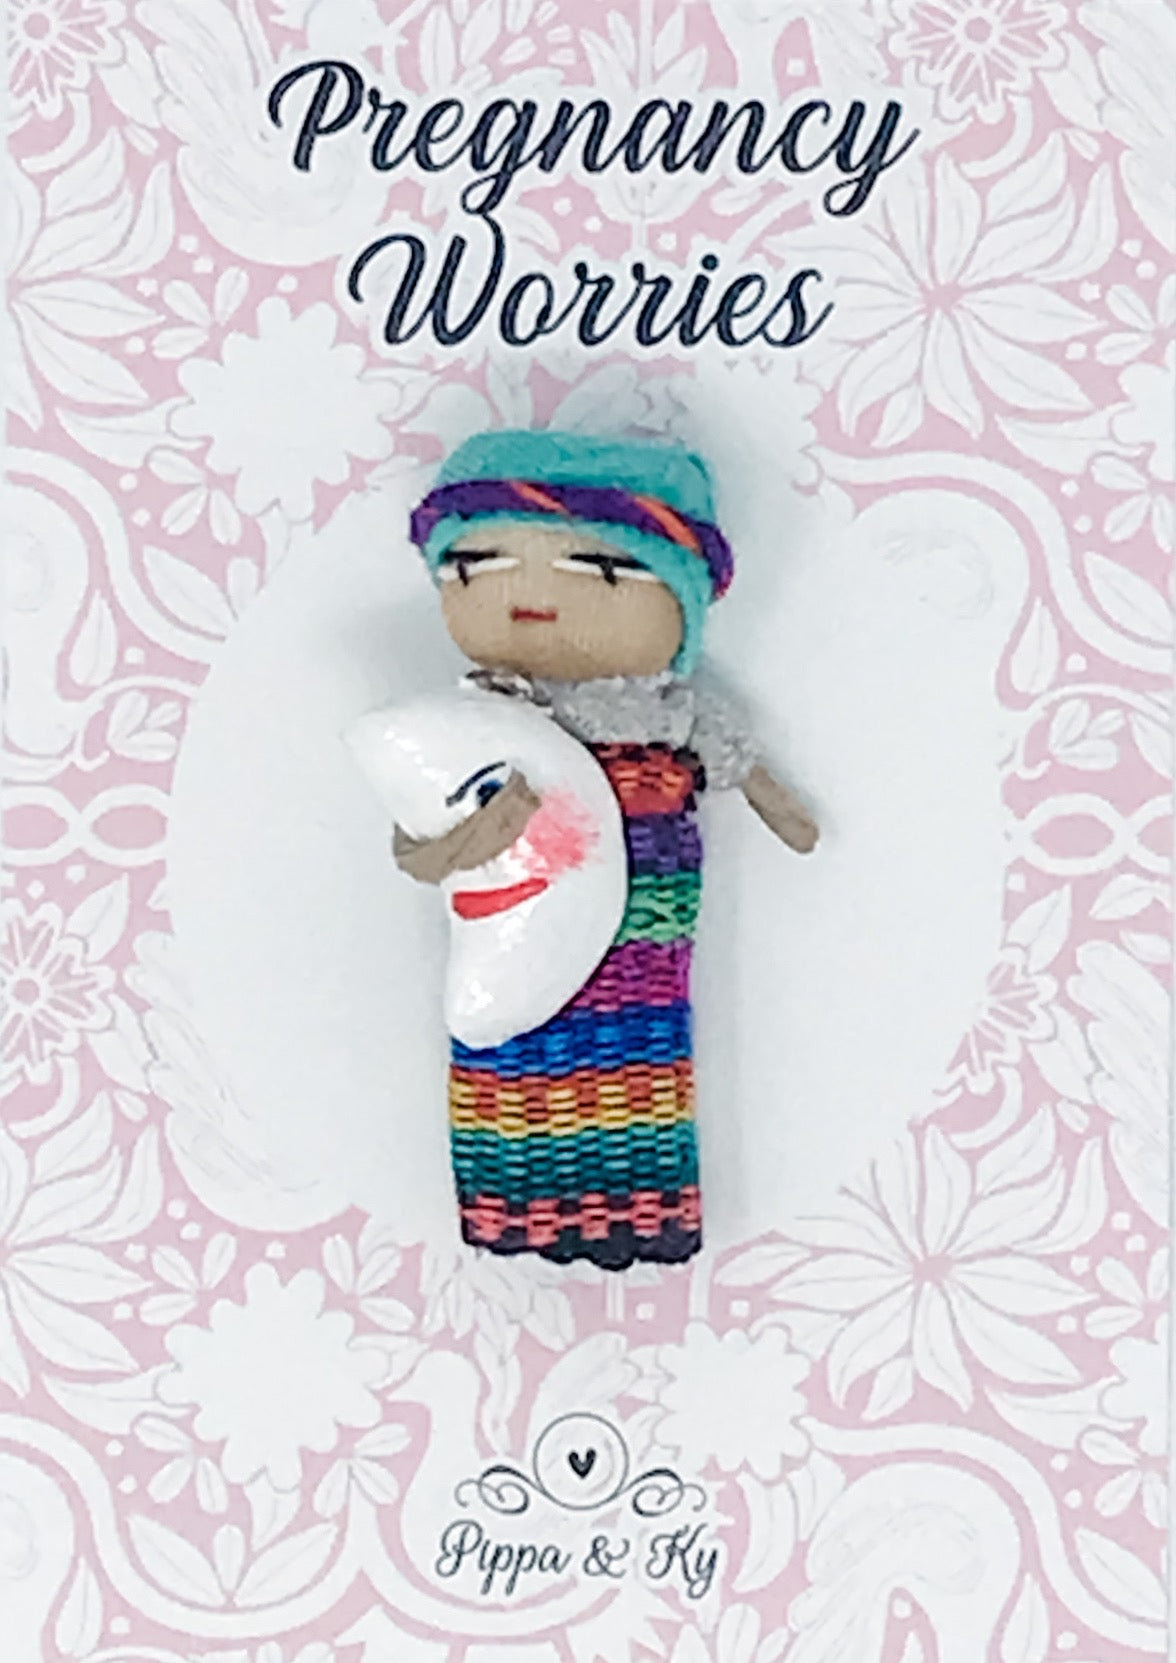 "Guatemalan ""Pregnancy Worries"" Worry Doll"